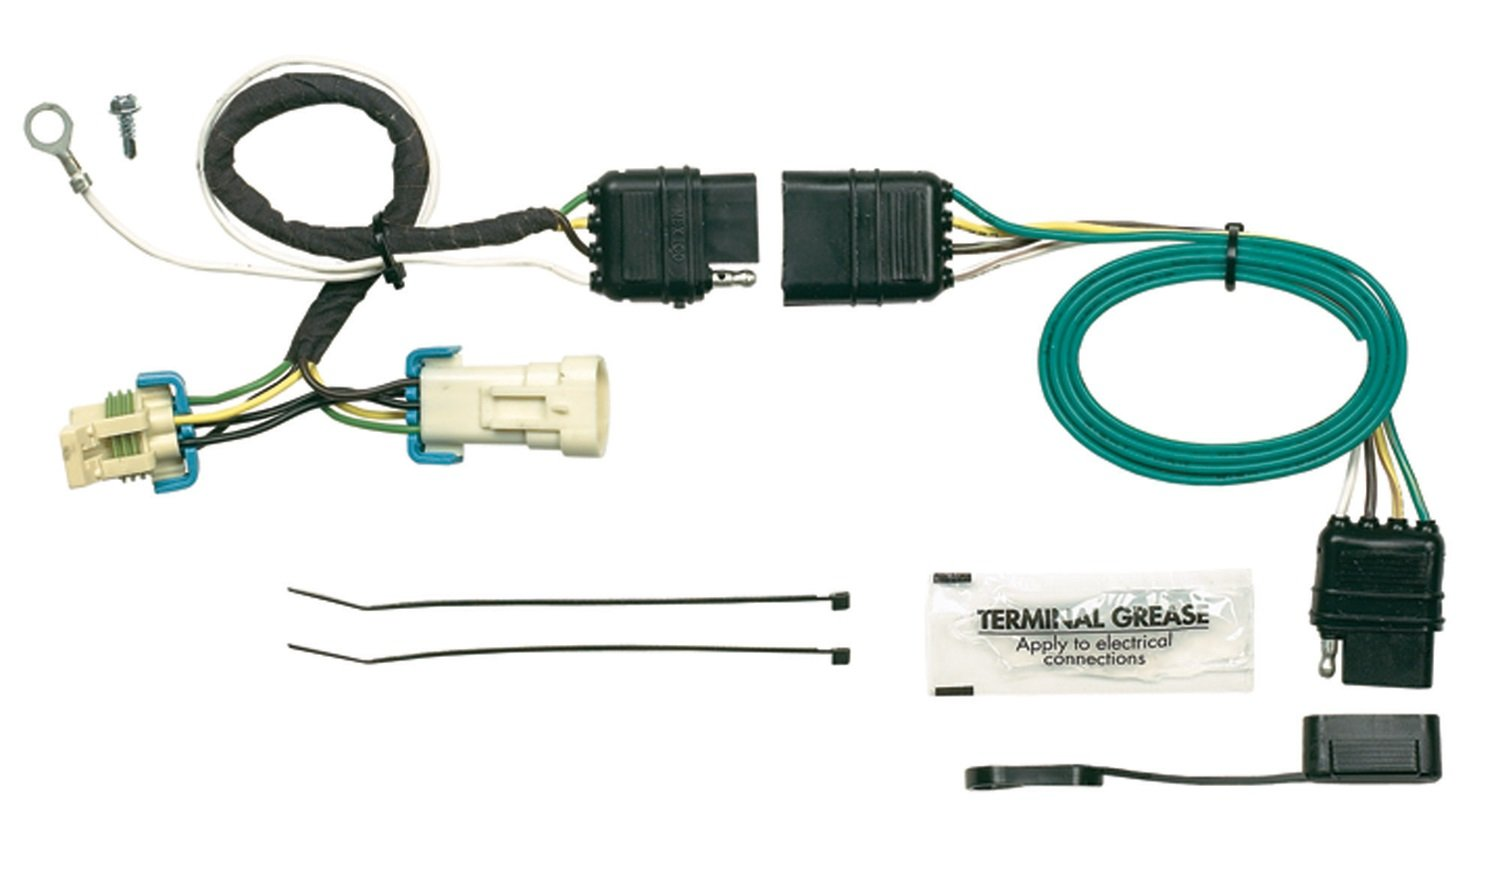 618X6OJbTkL._SL1500_ amazon com hopkins 41135 plug in simple vehicle wiring kit 1999 GMC at readyjetset.co